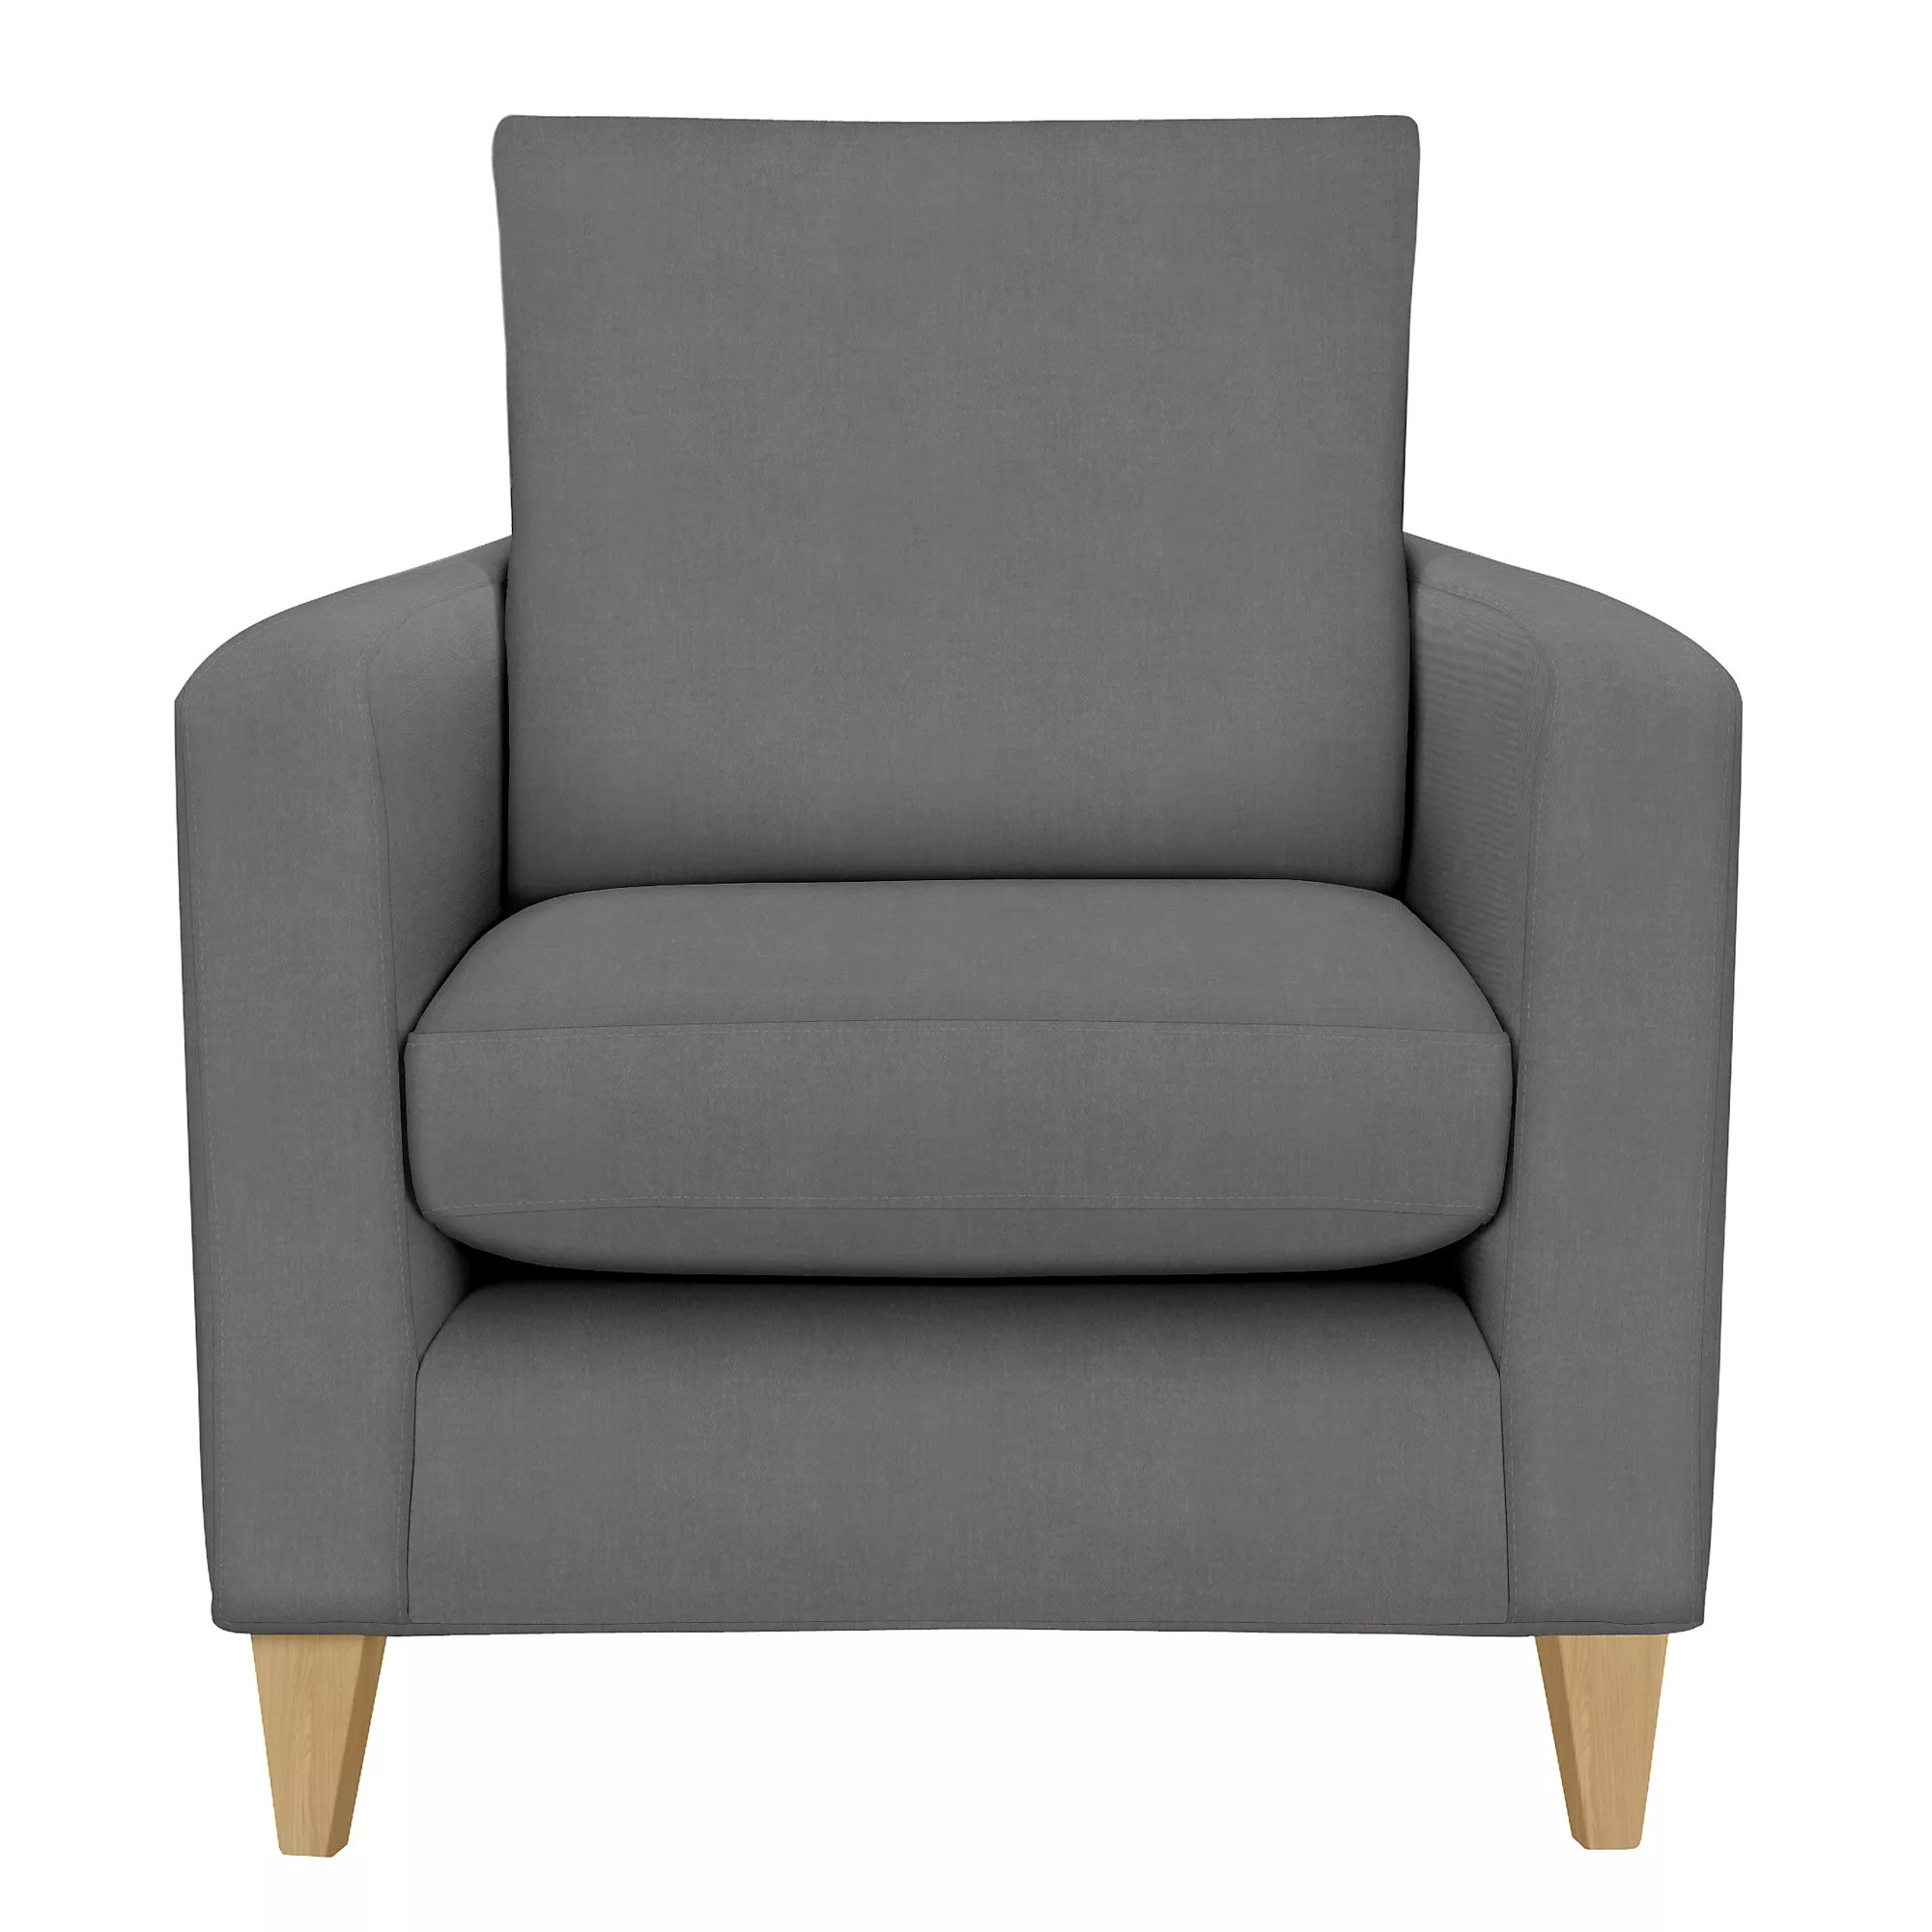 john lewis loose chair covers rebar sizes bailey cover kerry charcoal at buyjohn online johnlewis com